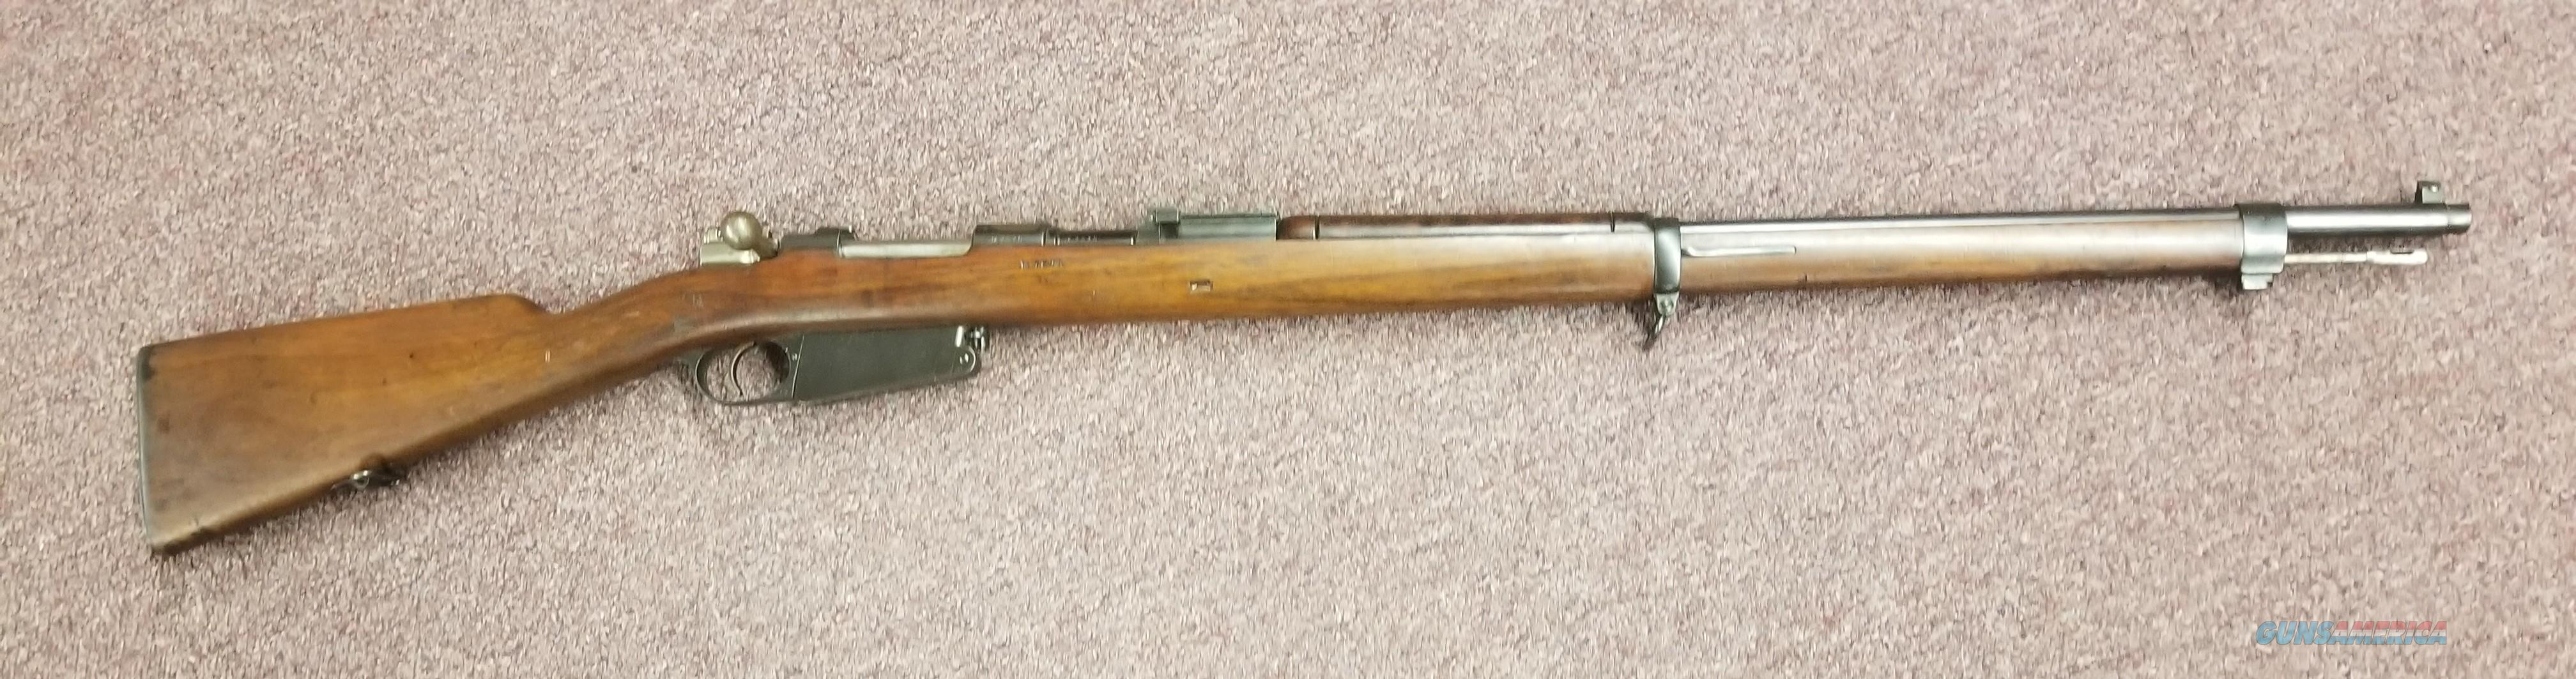 1891 Argentine Mauser  7.65  - Free Shipping !!  Guns > Rifles > Military Misc. Rifles Non-US > Other